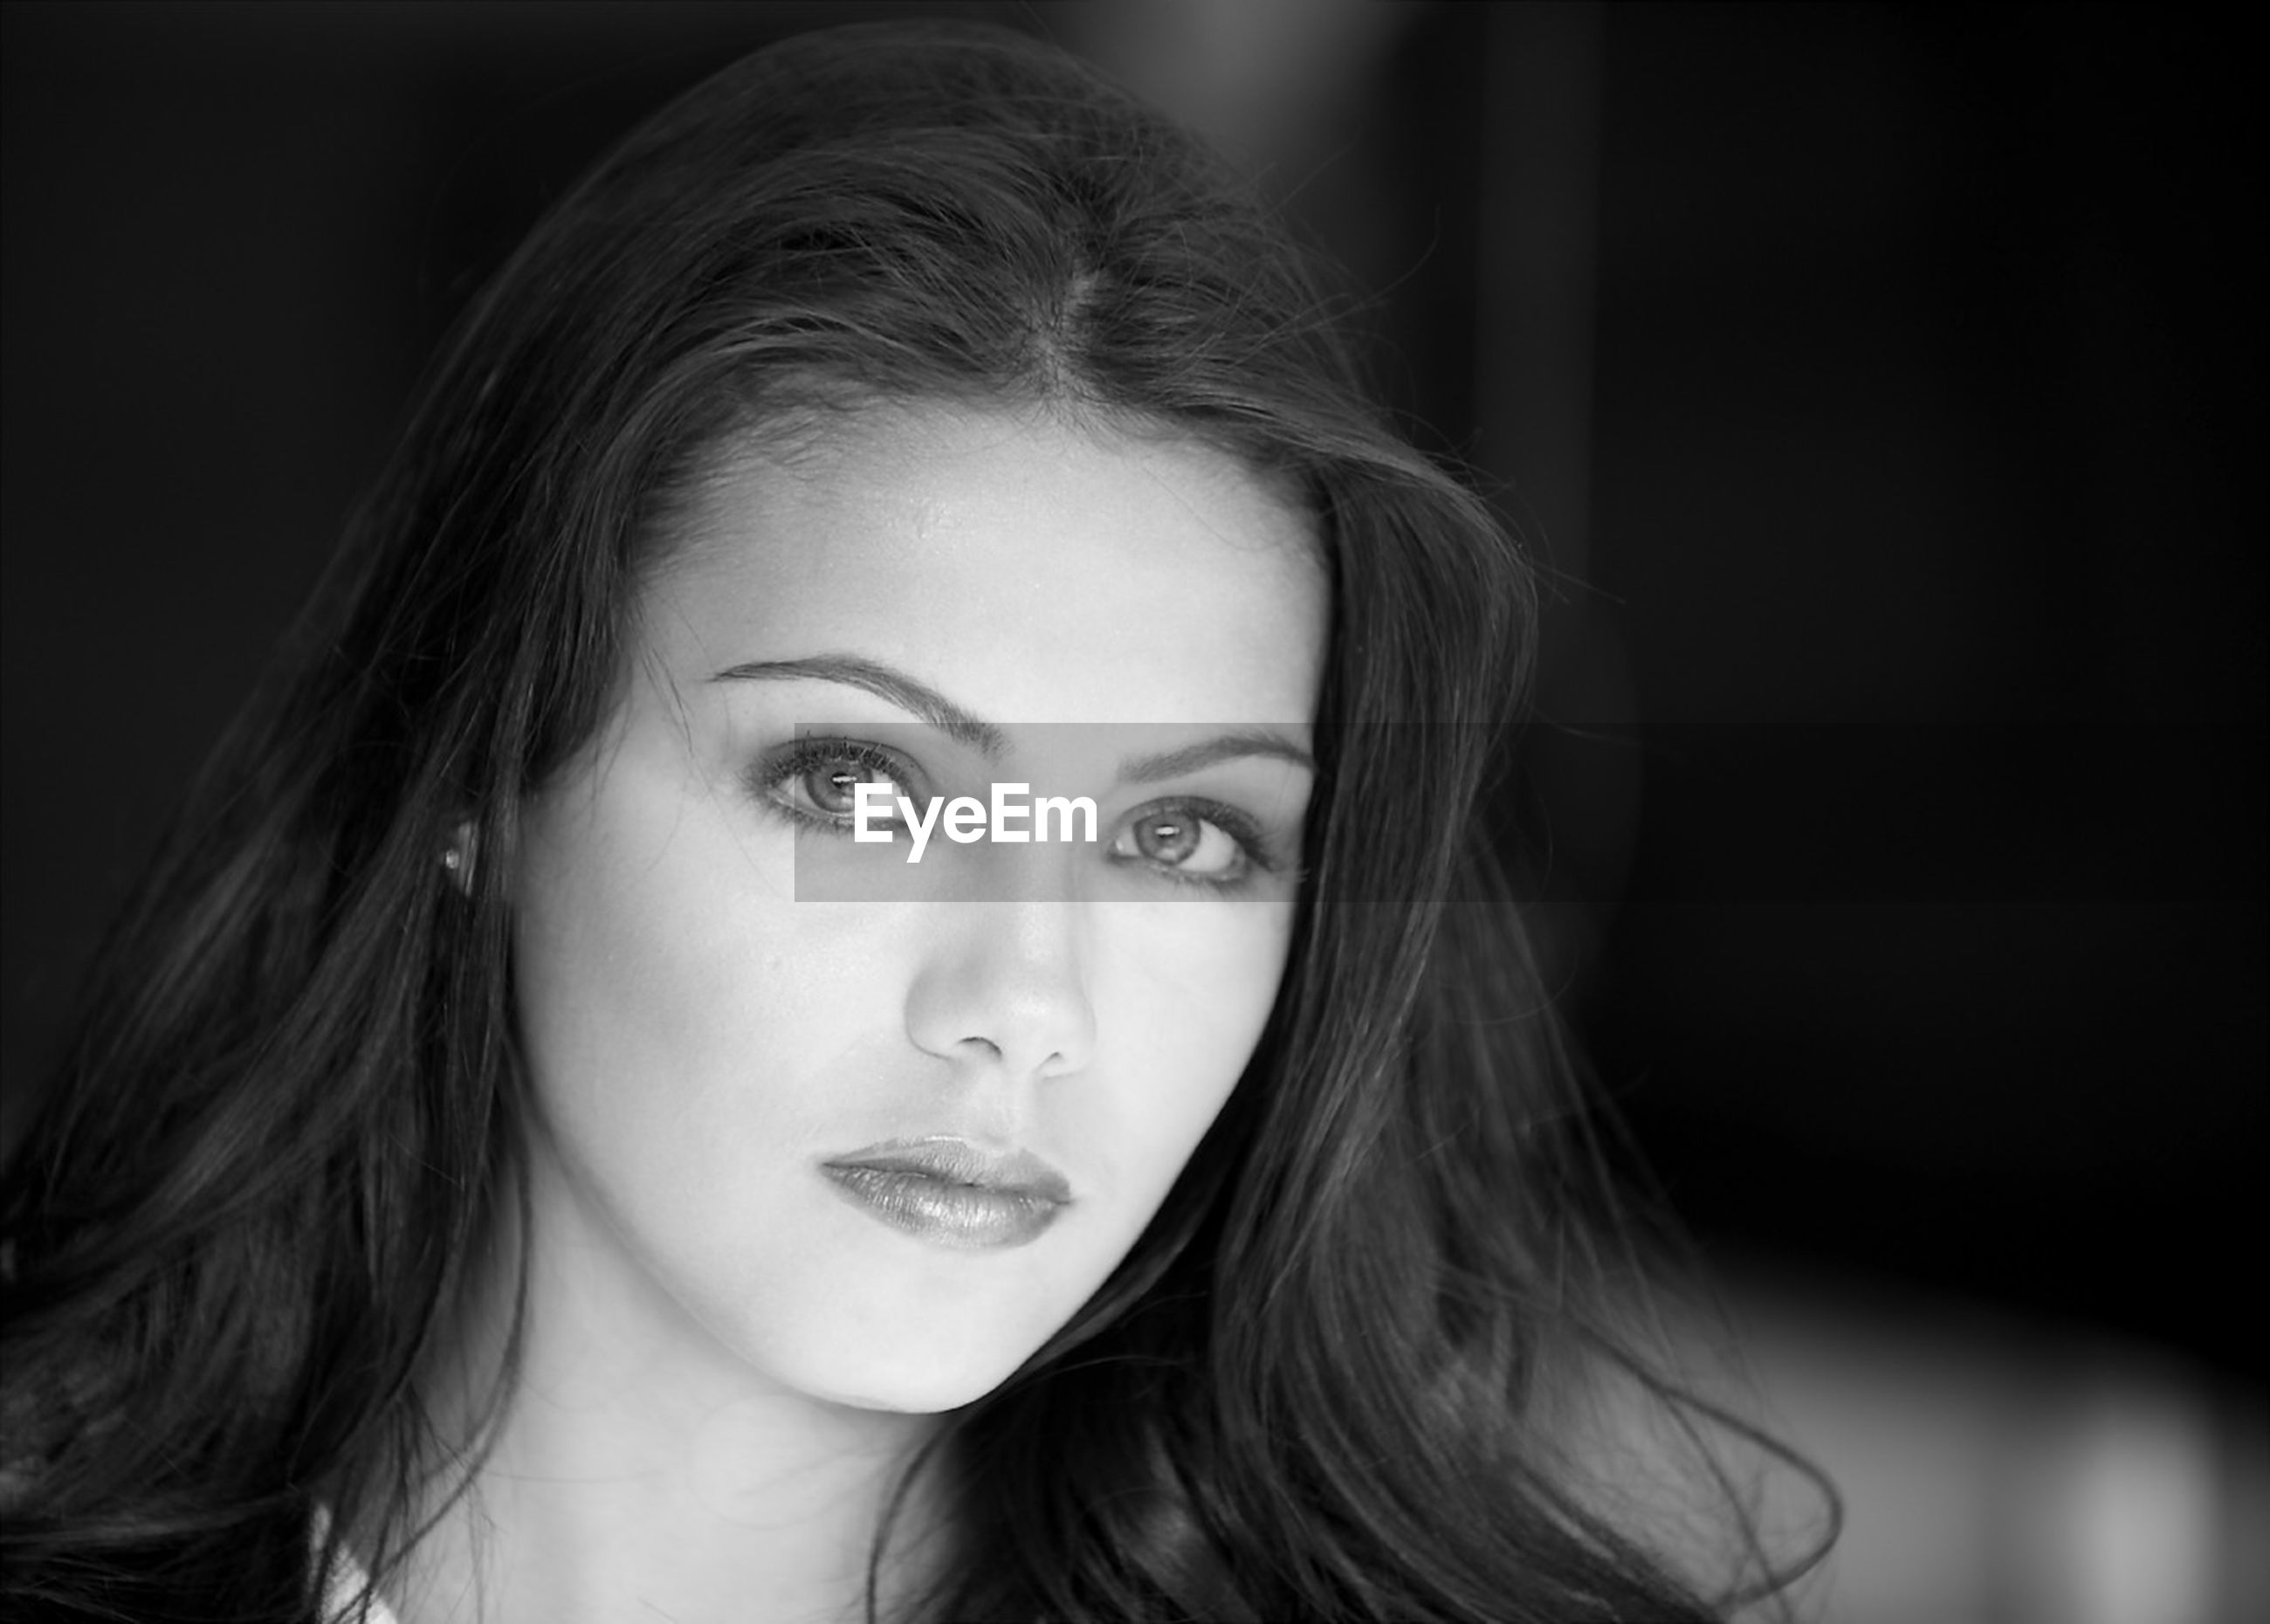 headshot, person, portrait, young women, looking at camera, young adult, long hair, close-up, lifestyles, front view, indoors, head and shoulders, human face, focus on foreground, contemplation, leisure activity